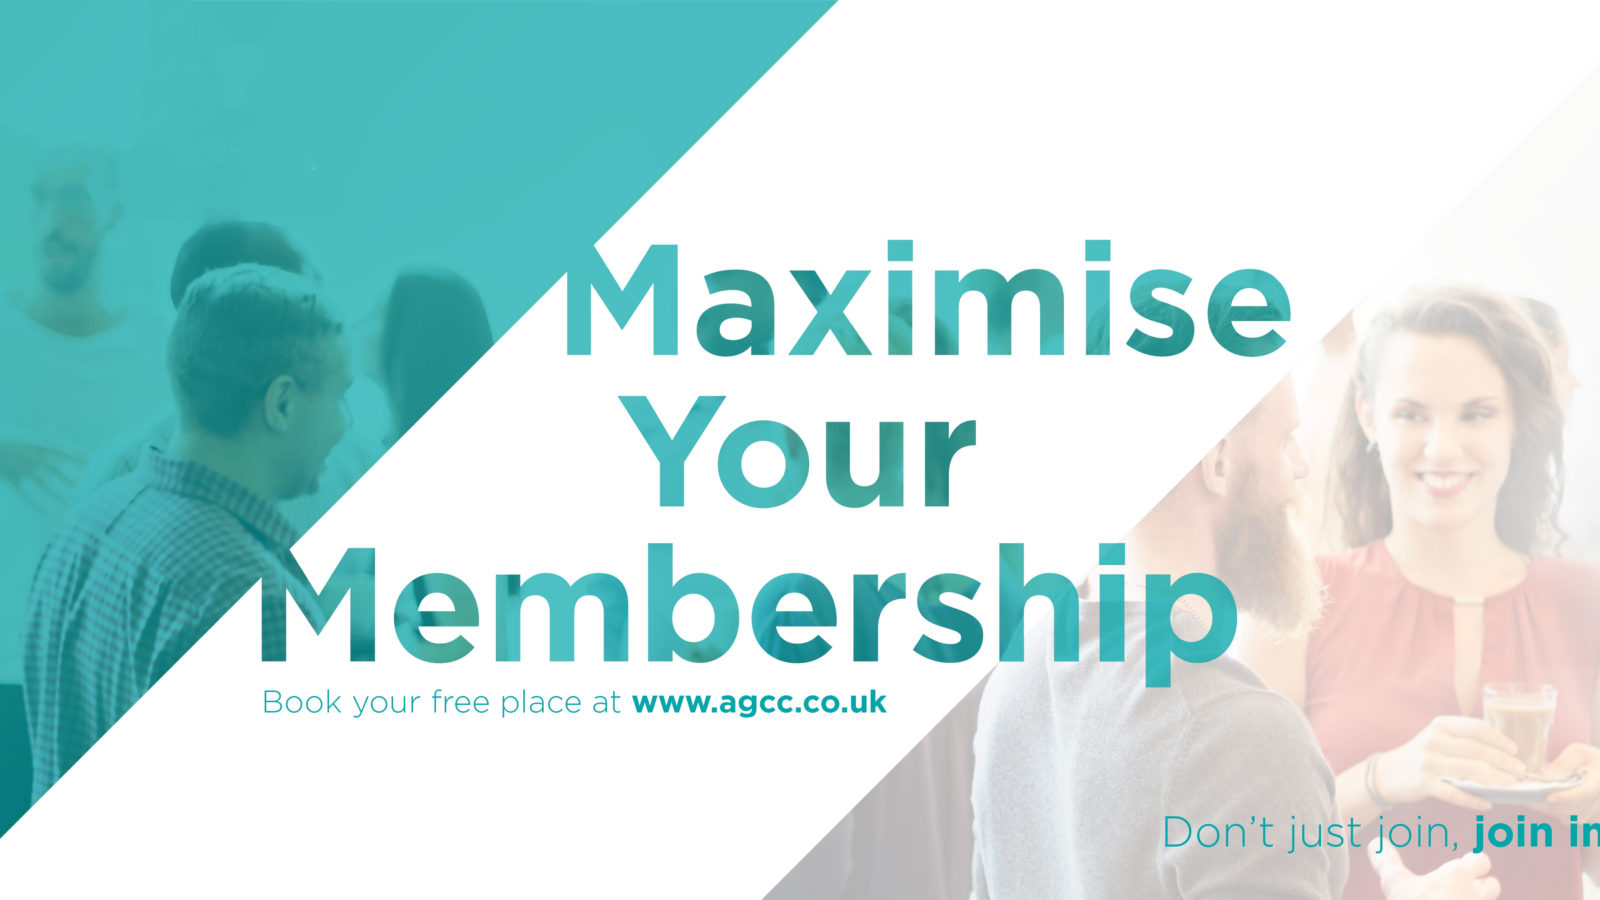 Maximise your Membership: Find out how to realise the full benefits of being a Chamber member